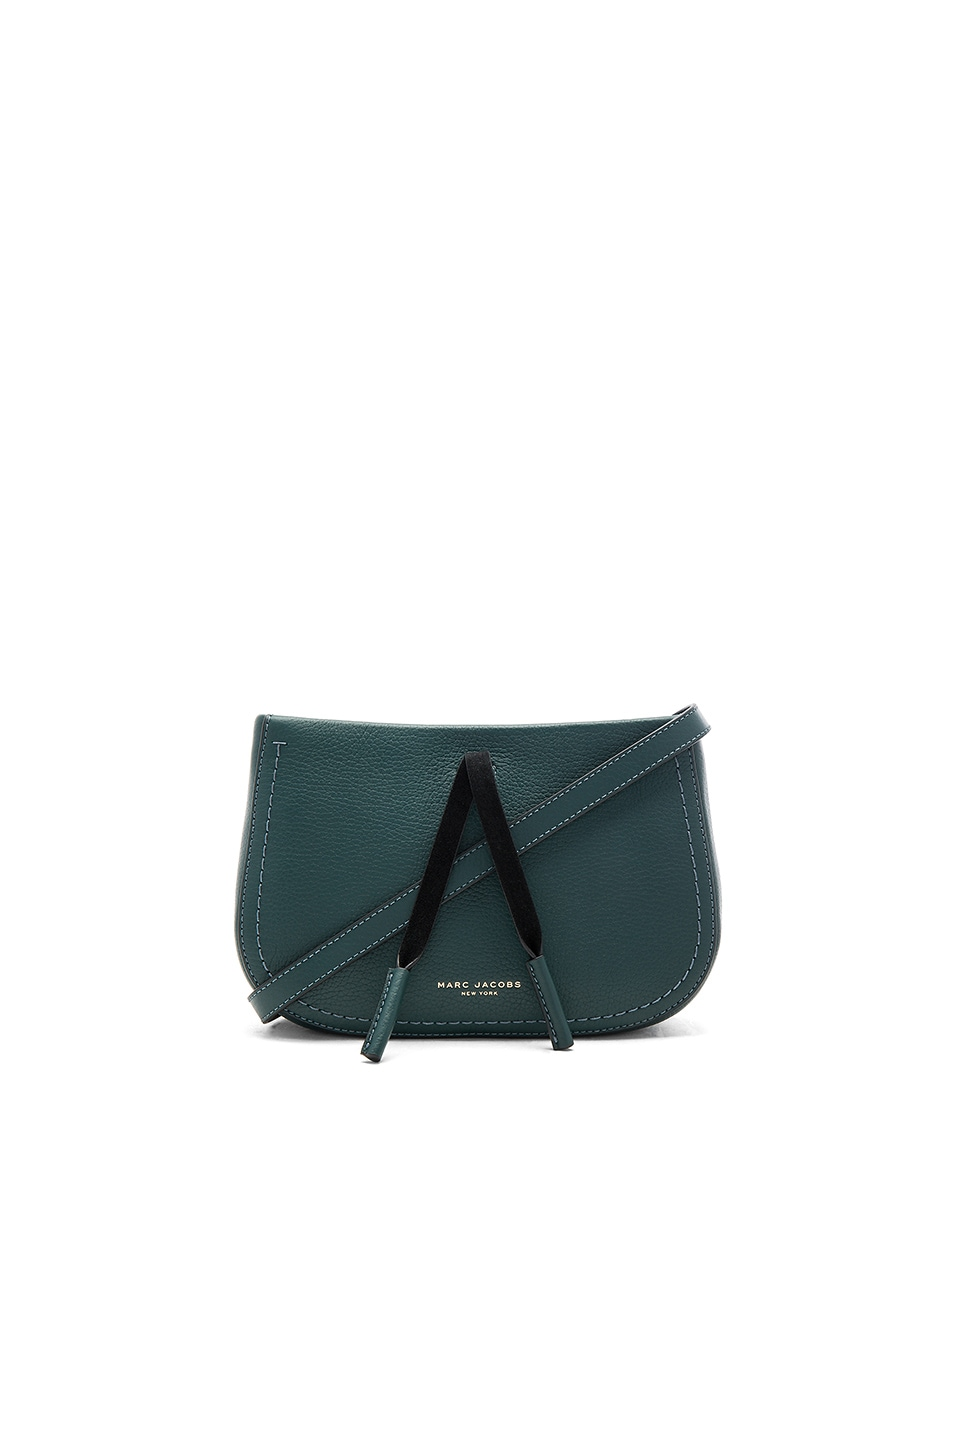 Maverick Crossbody Bag by Marc Jacobs